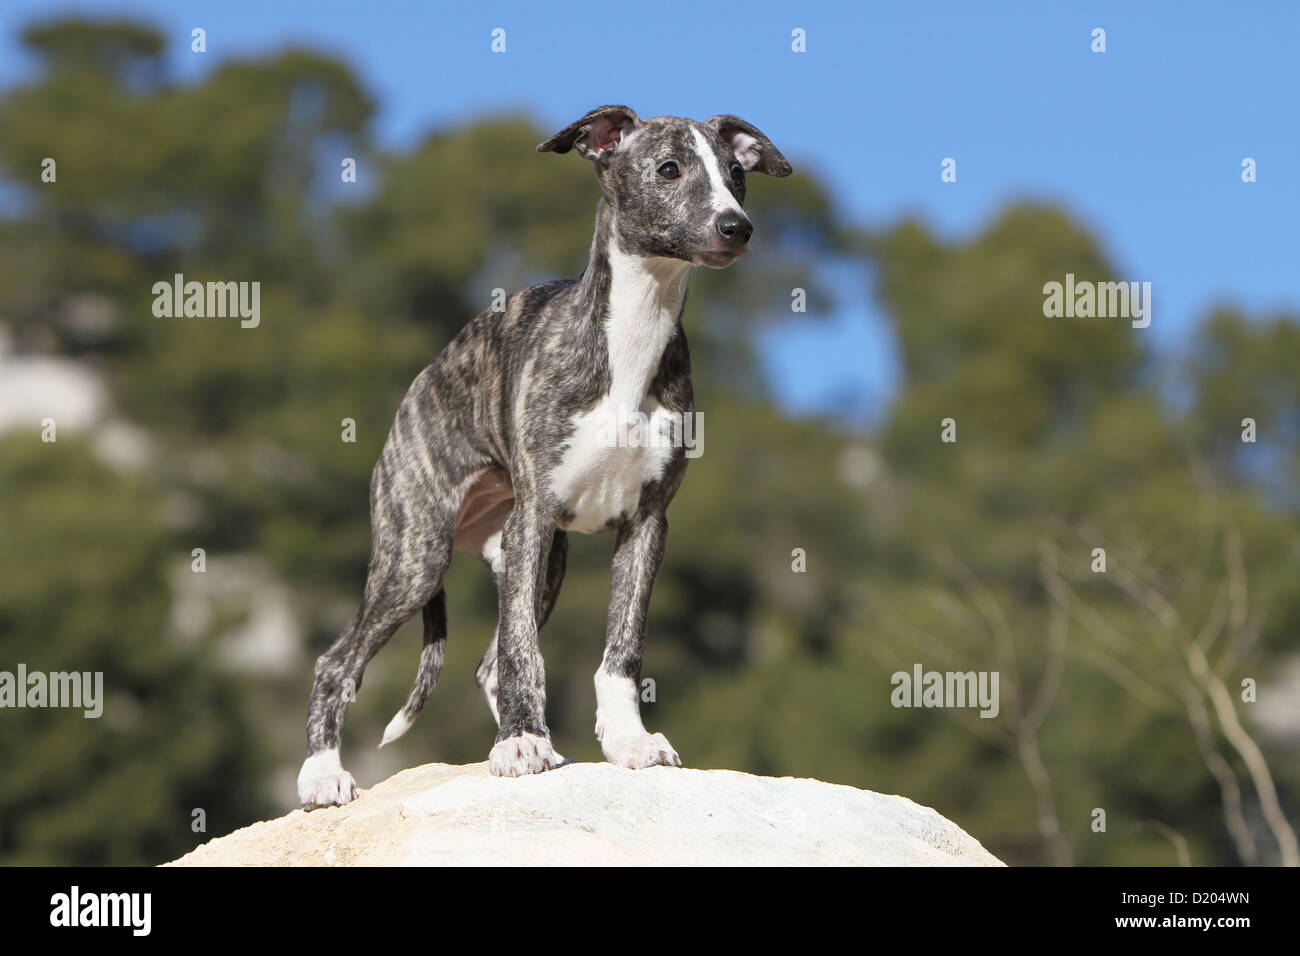 Italian English Animsld: Coursing Animals Stock Photos & Coursing Animals Stock